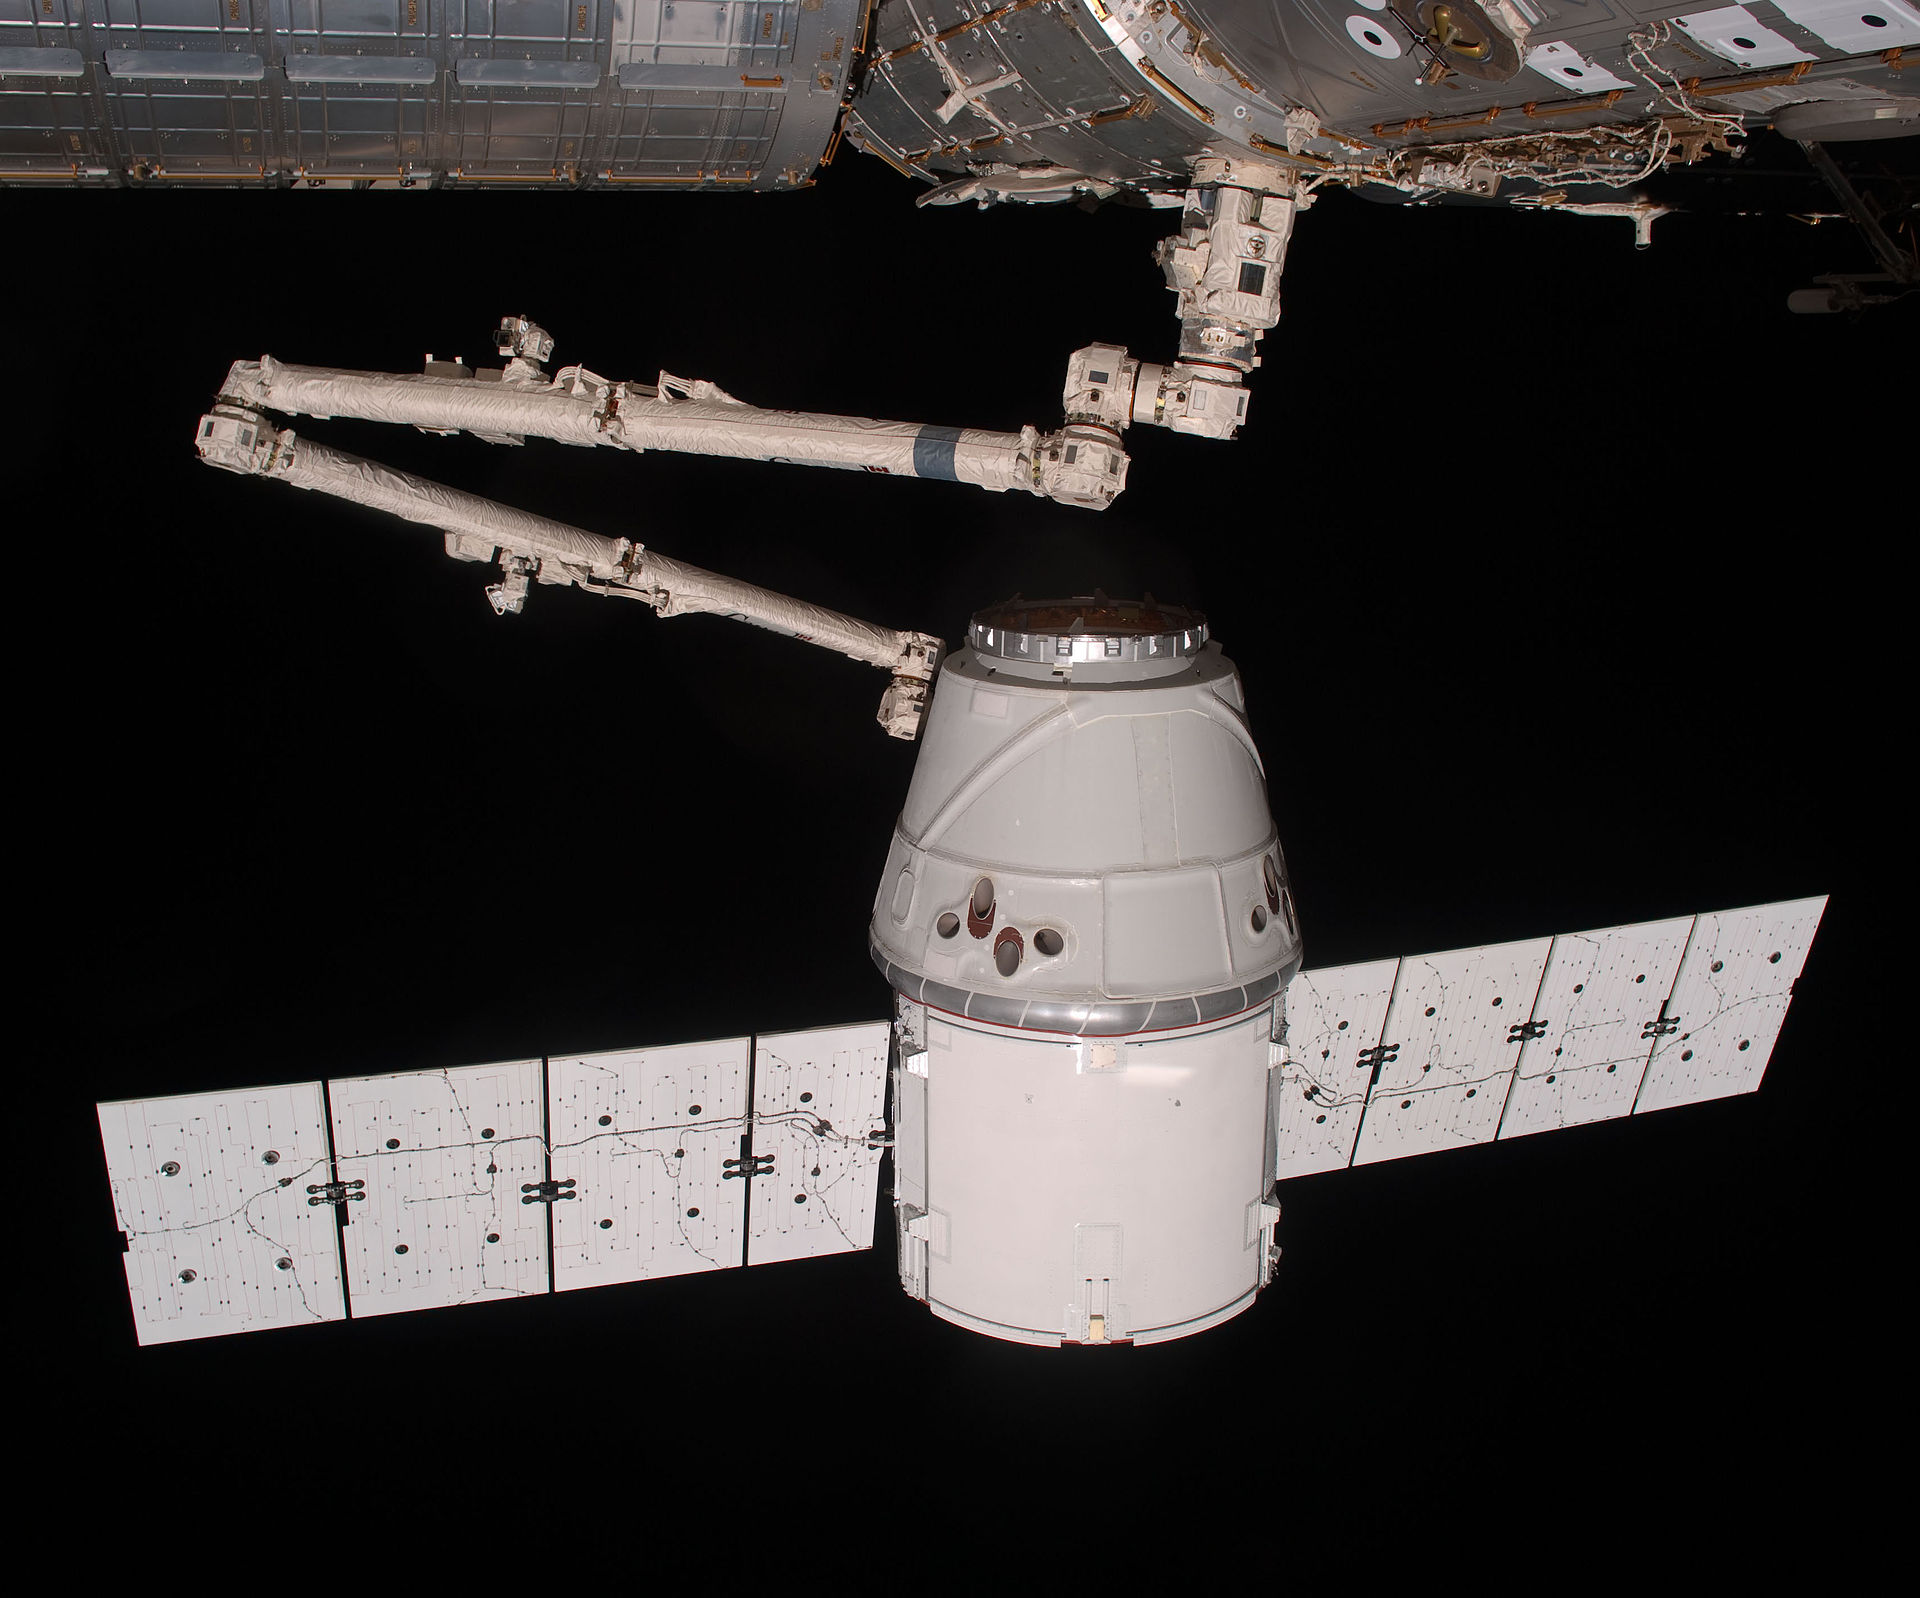 Dragon grappled by Canadarm2